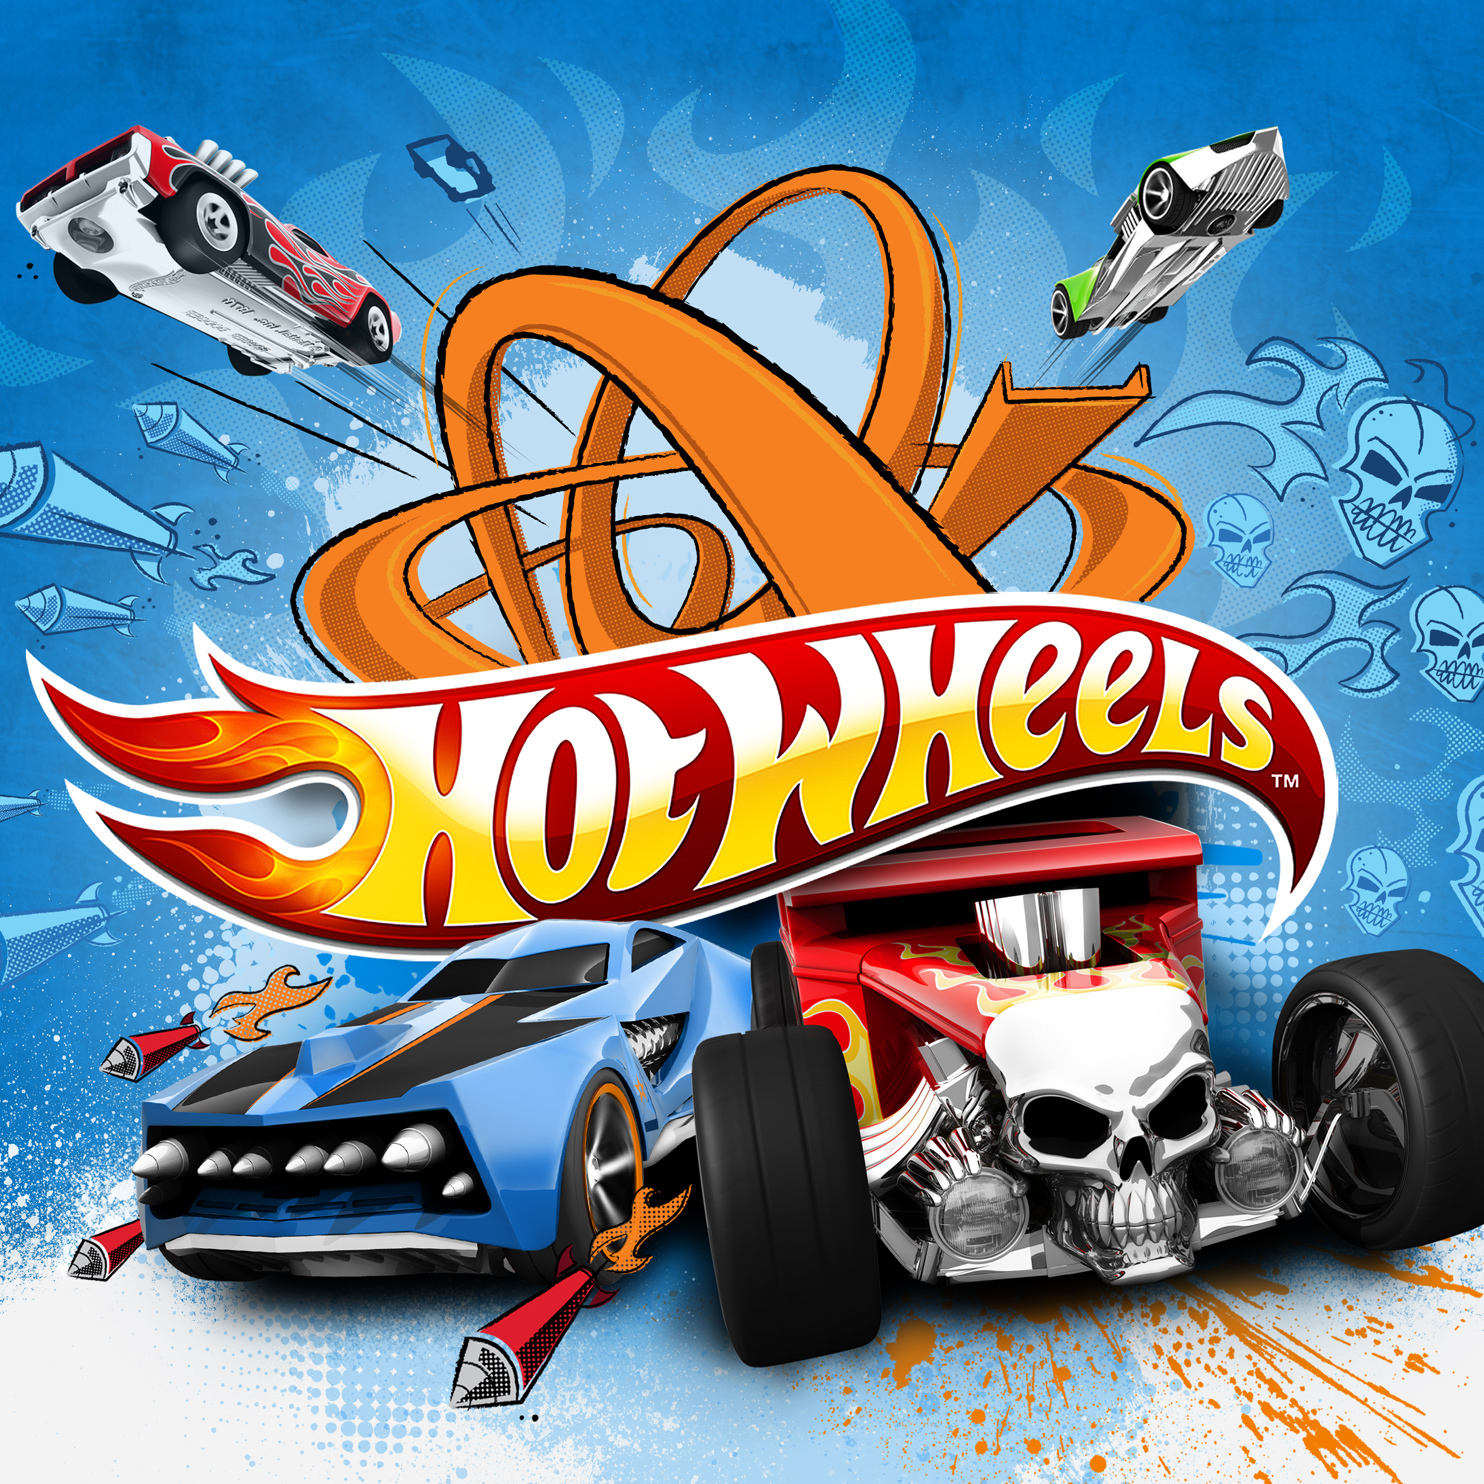 22_hot_wheels_1484px